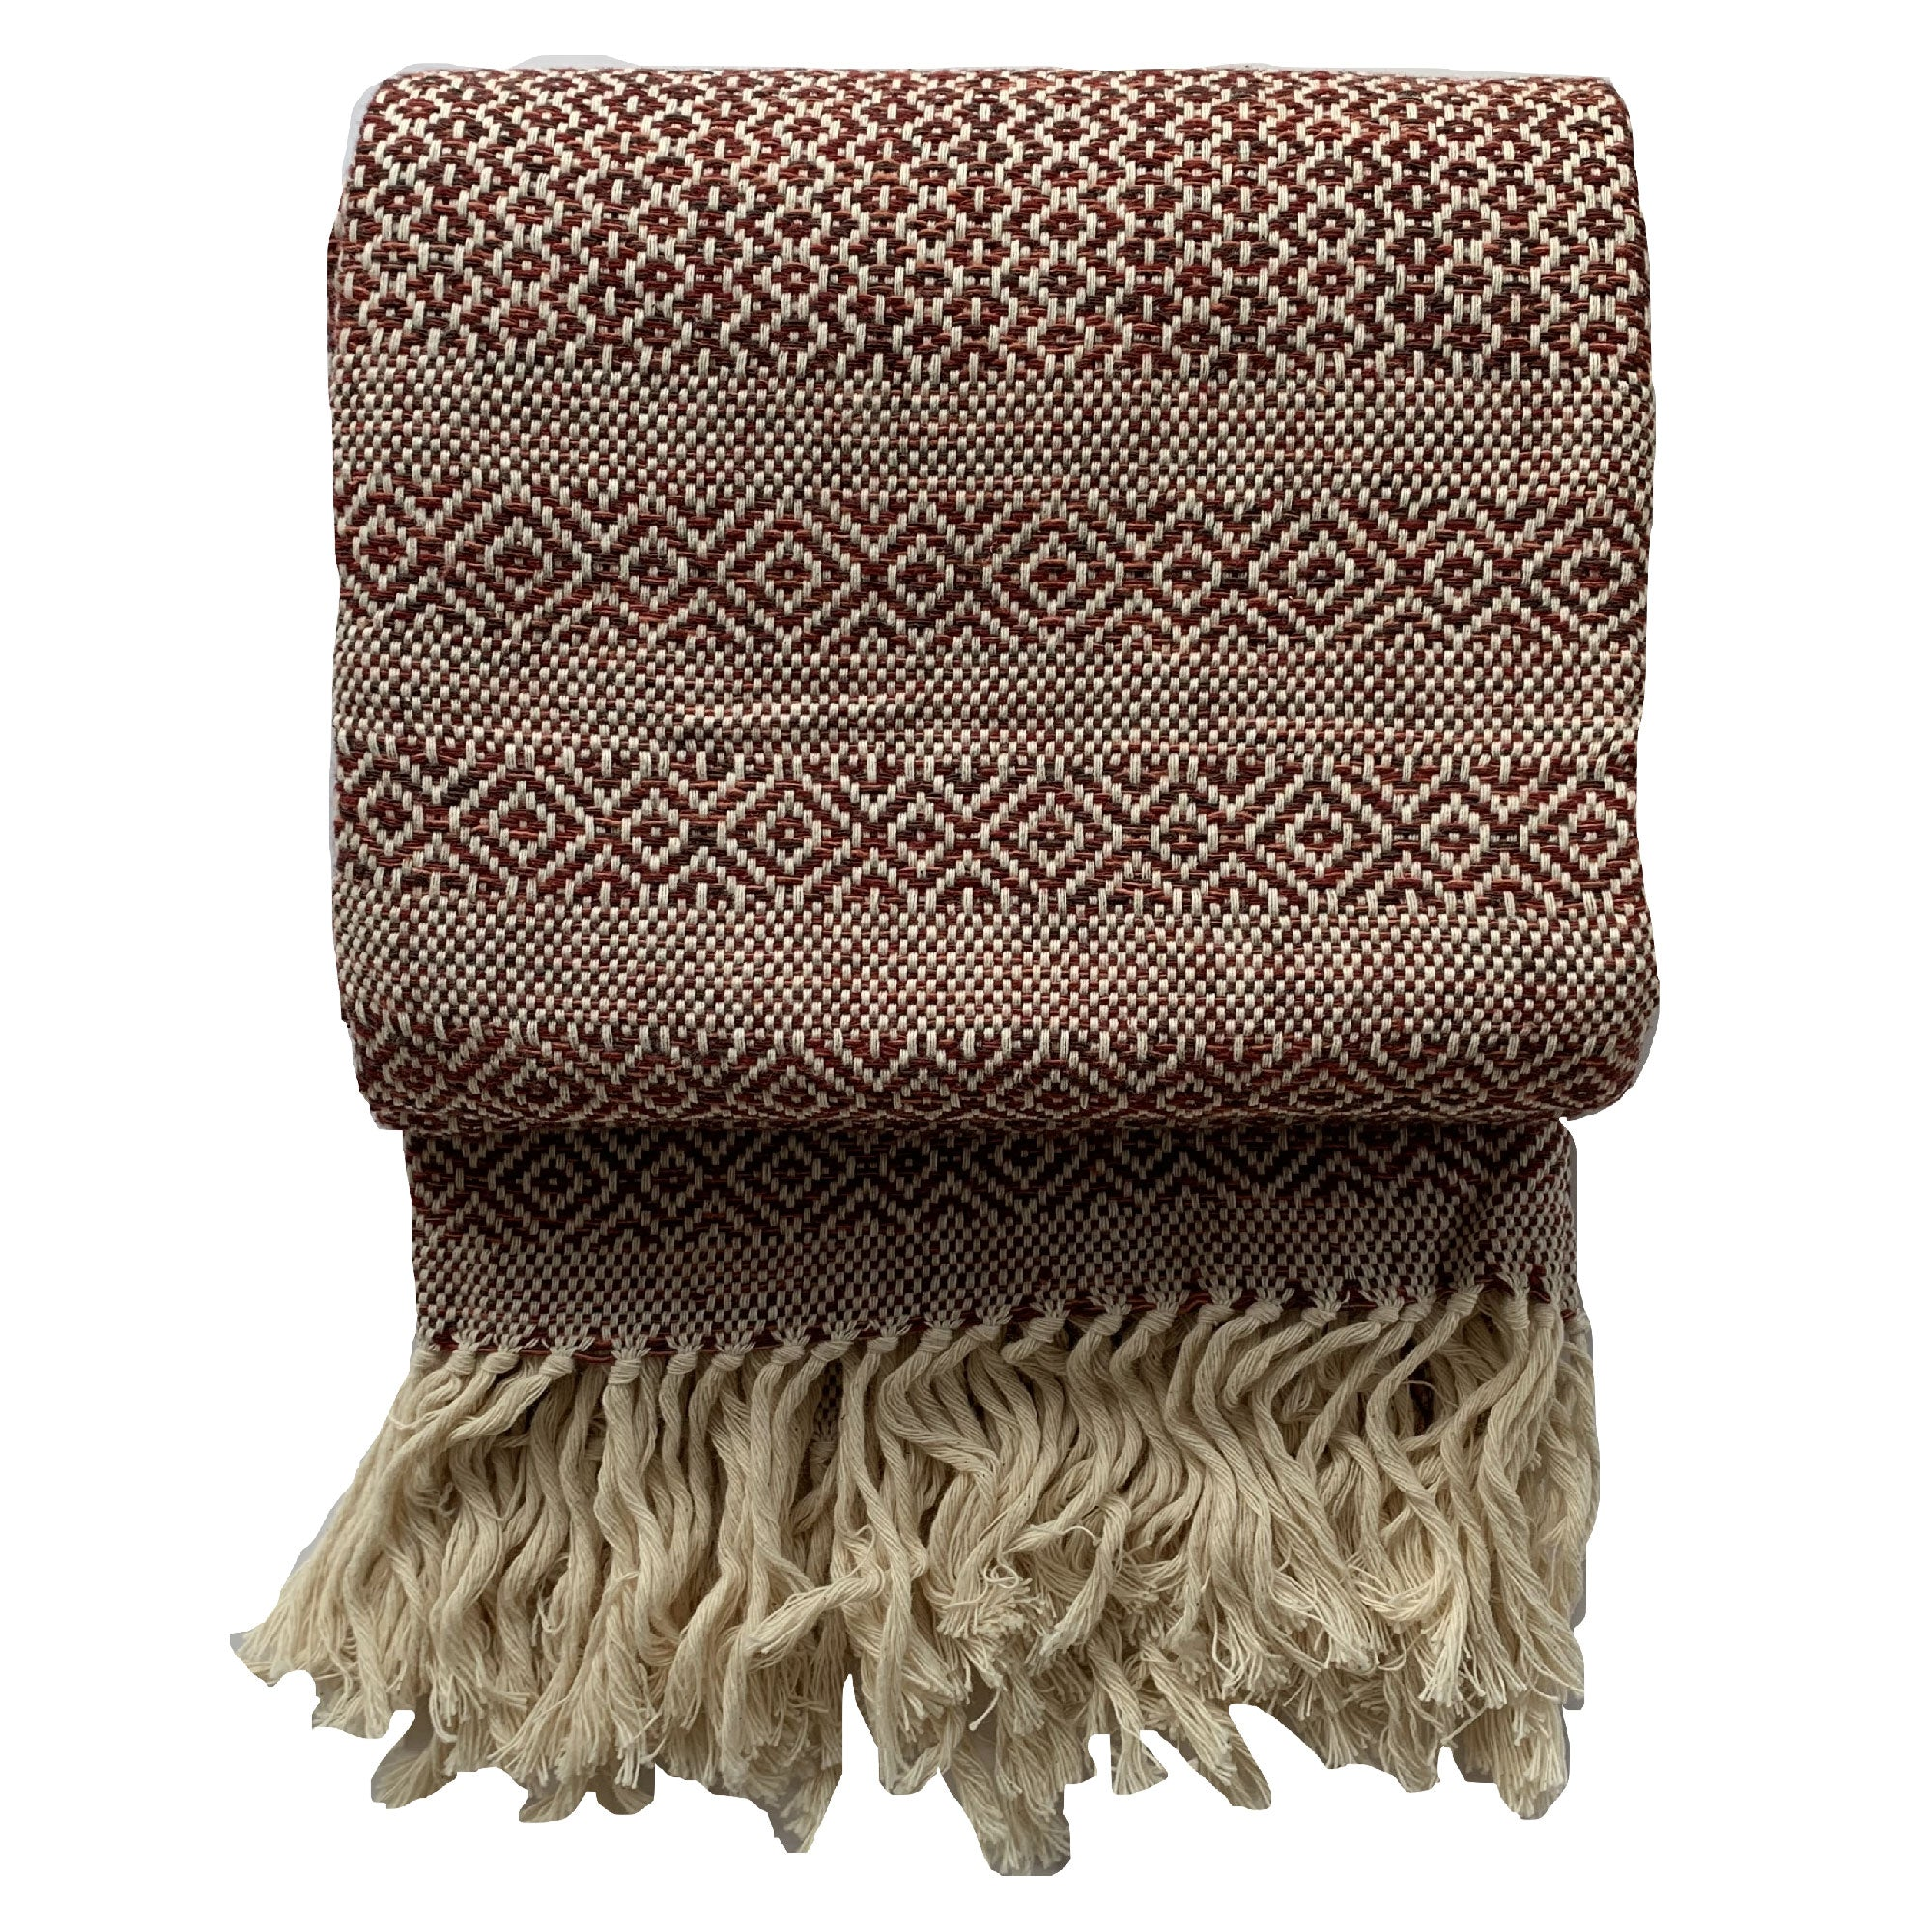 Handmade cotton mixed birdseye throw handmade by Living Threads Co. artisans in Nicaragua in Ruby